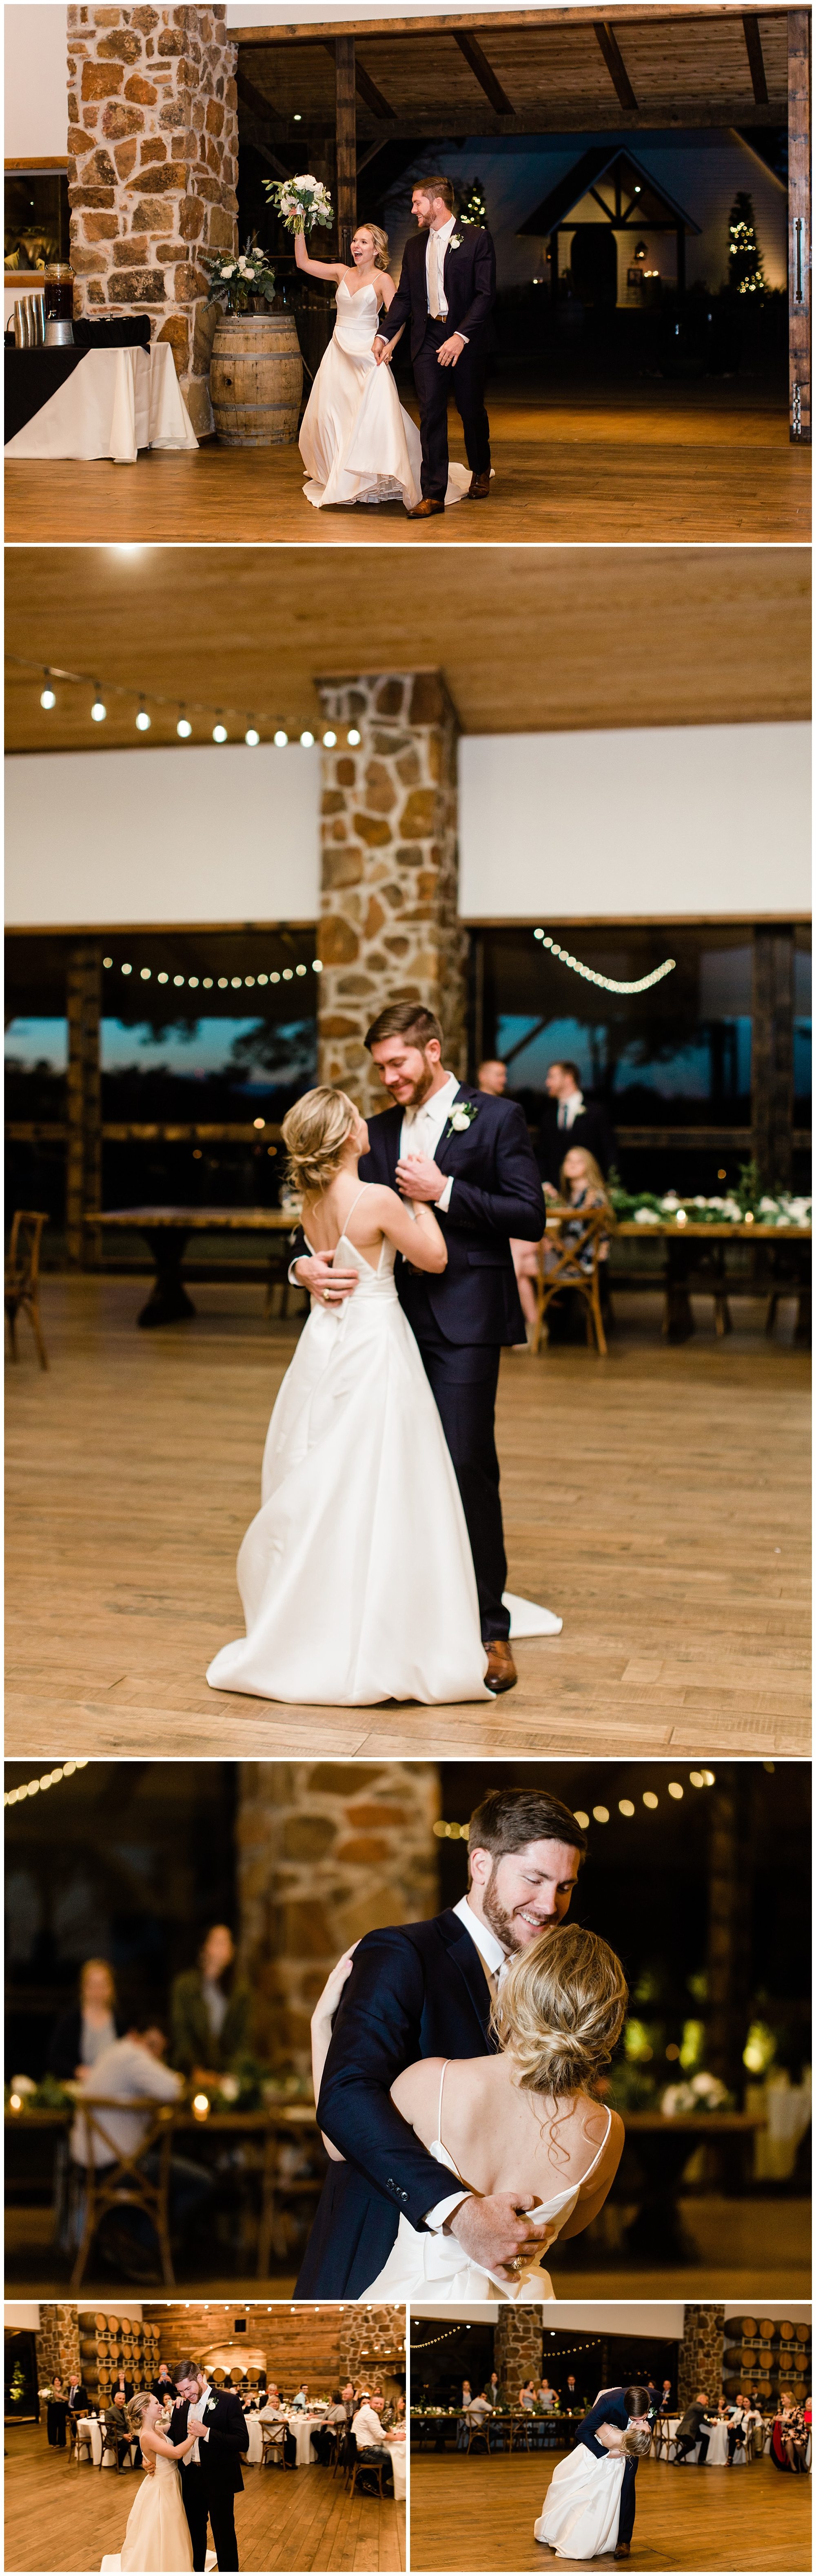 The_Vine_at_New_Ulm_Wedding_Kristina_Ross_Photography_0029.jpg